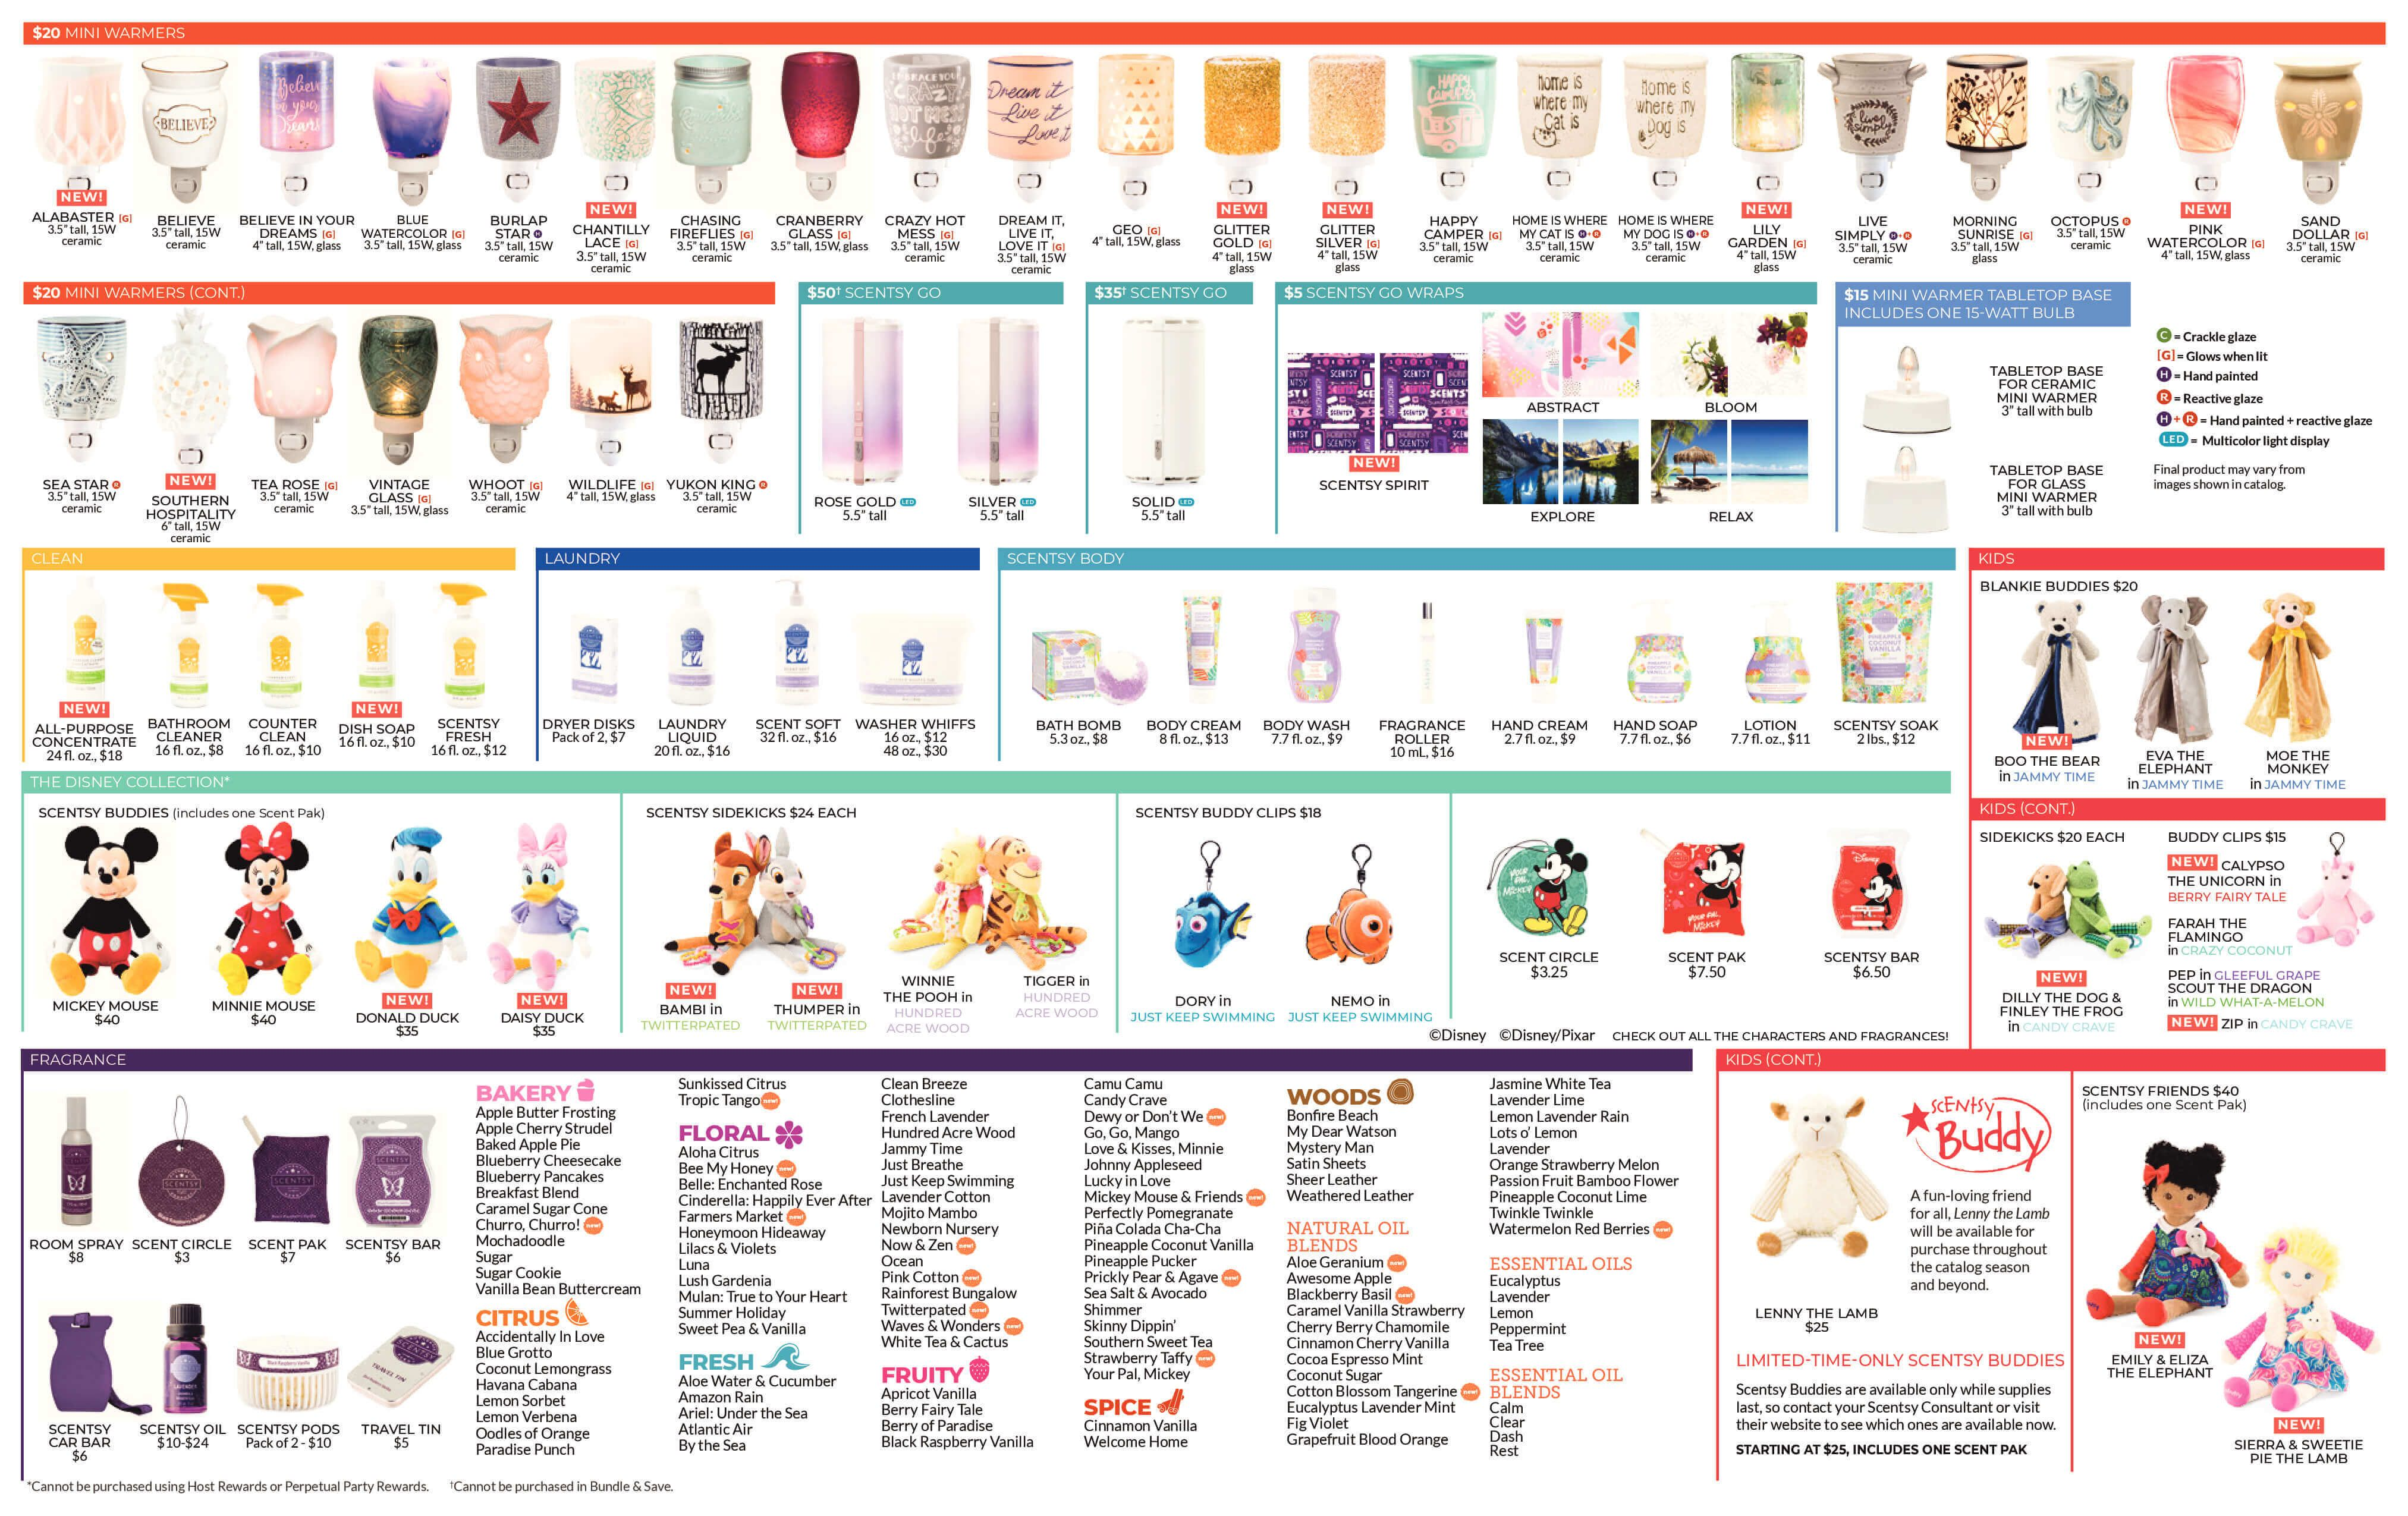 cd91fb2822e SCENTSY SPRING SUMMER 2019 CATALOG REVEAL | Scentsy® Buy Online | Scentsy  Warmers and Scents | Incandescent.Scentsy.us